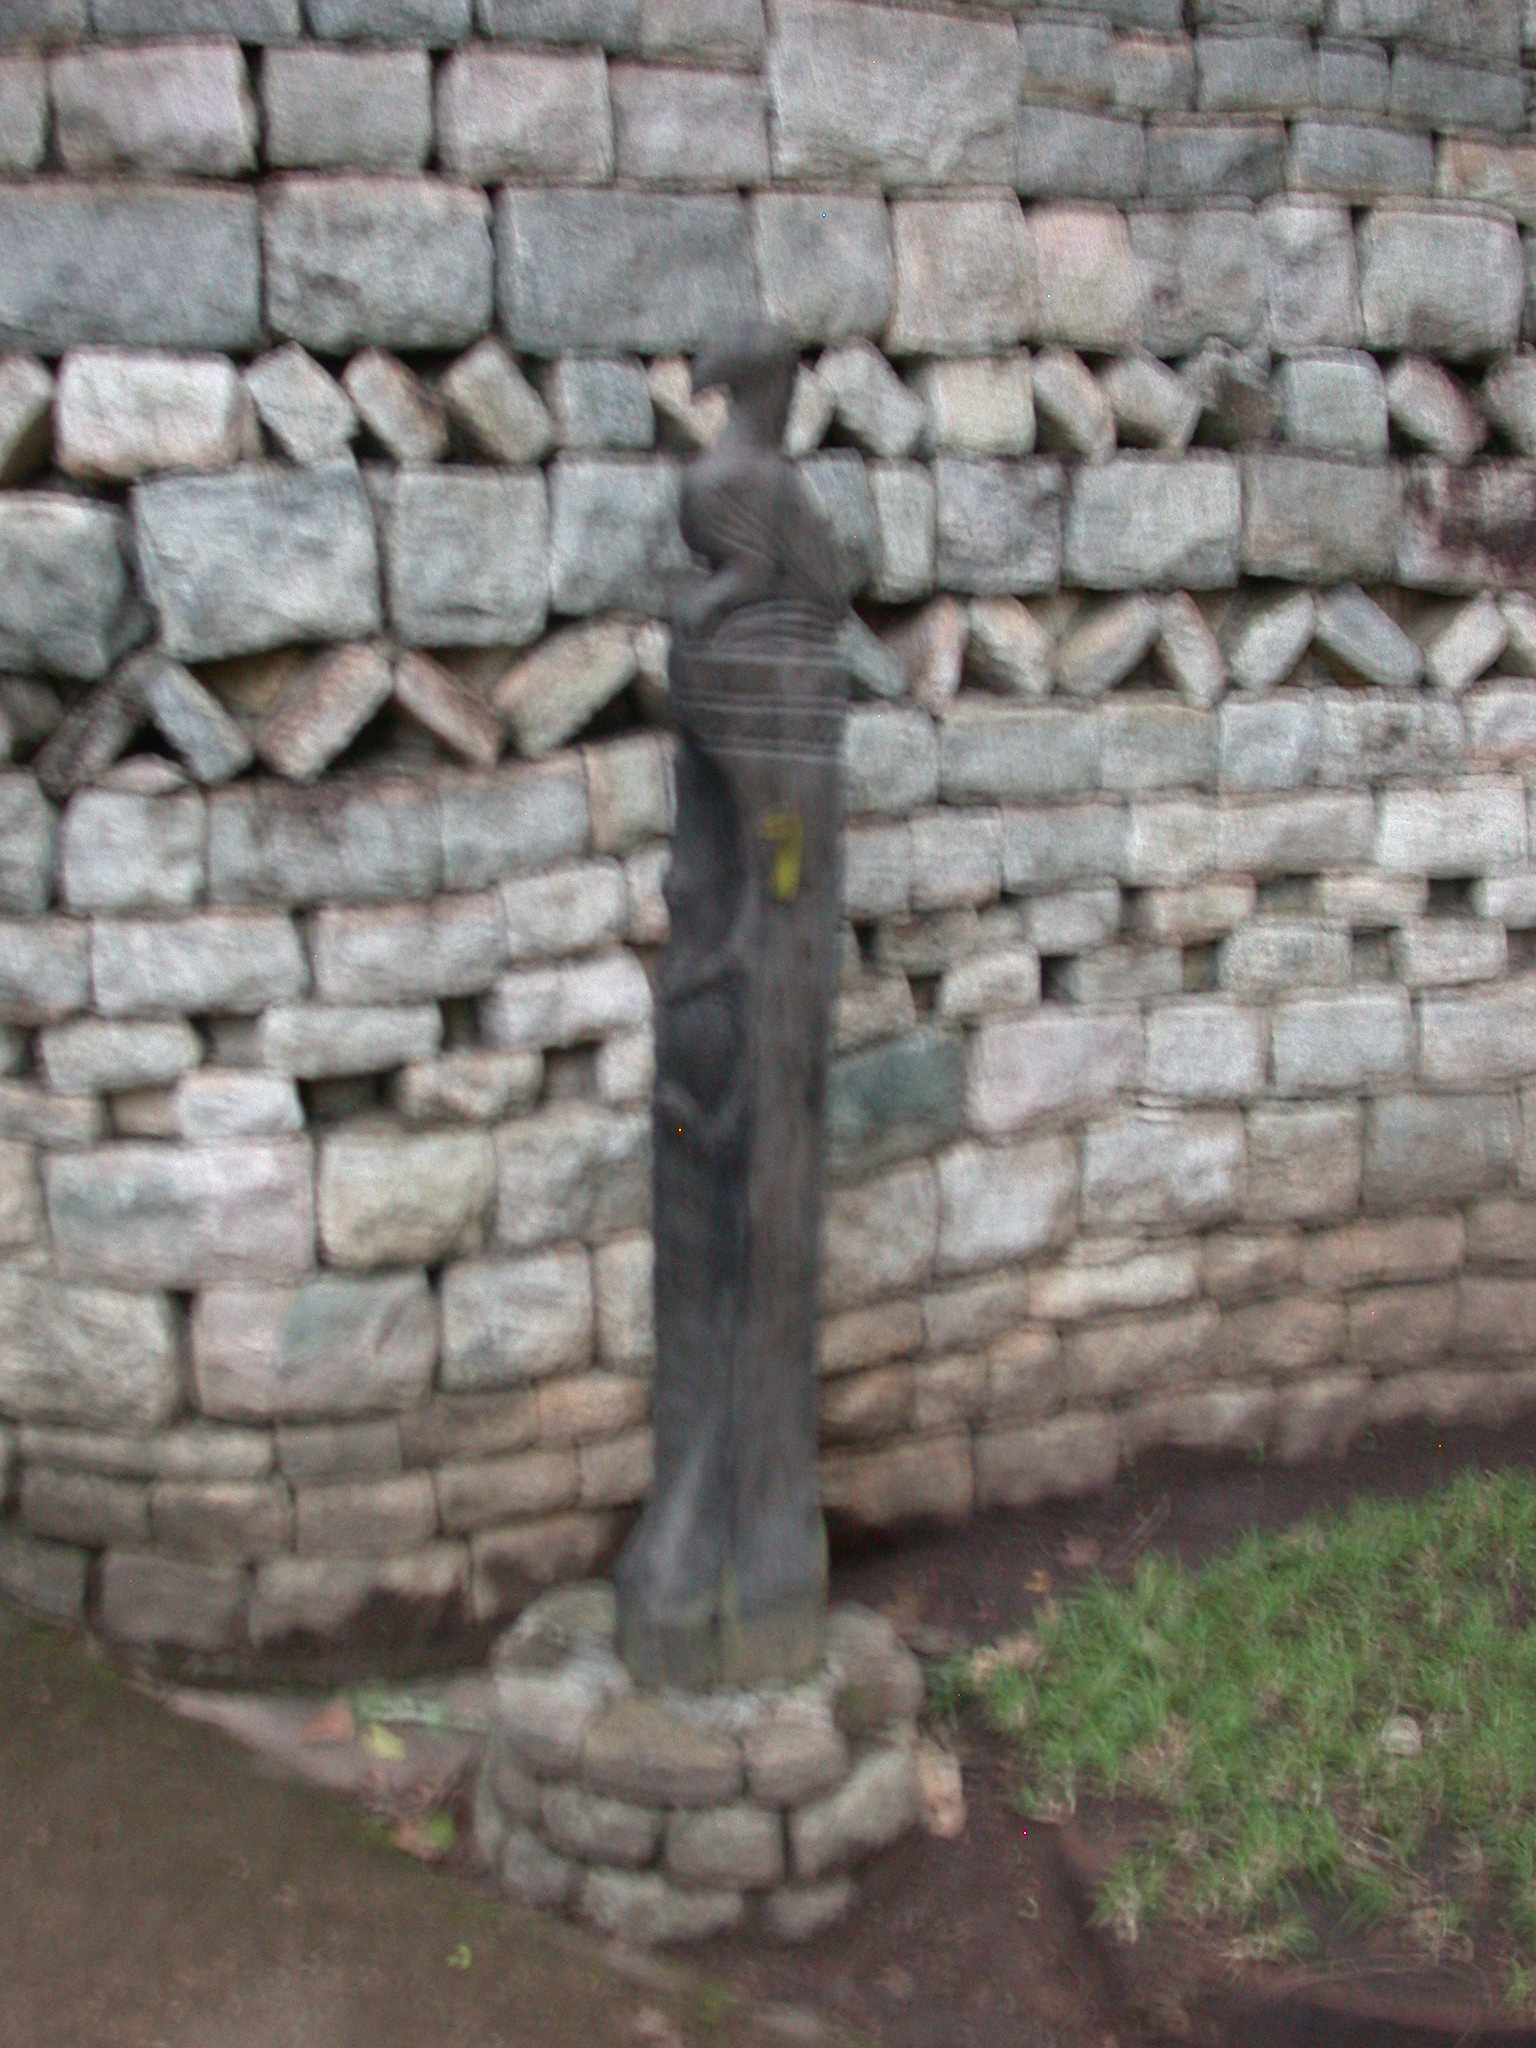 Sculpture of Great Zimbabwe Bird Outside the Enclosure Around My Suite at the Ancient City Lodge, Outside Masvingo, Zimbabwe